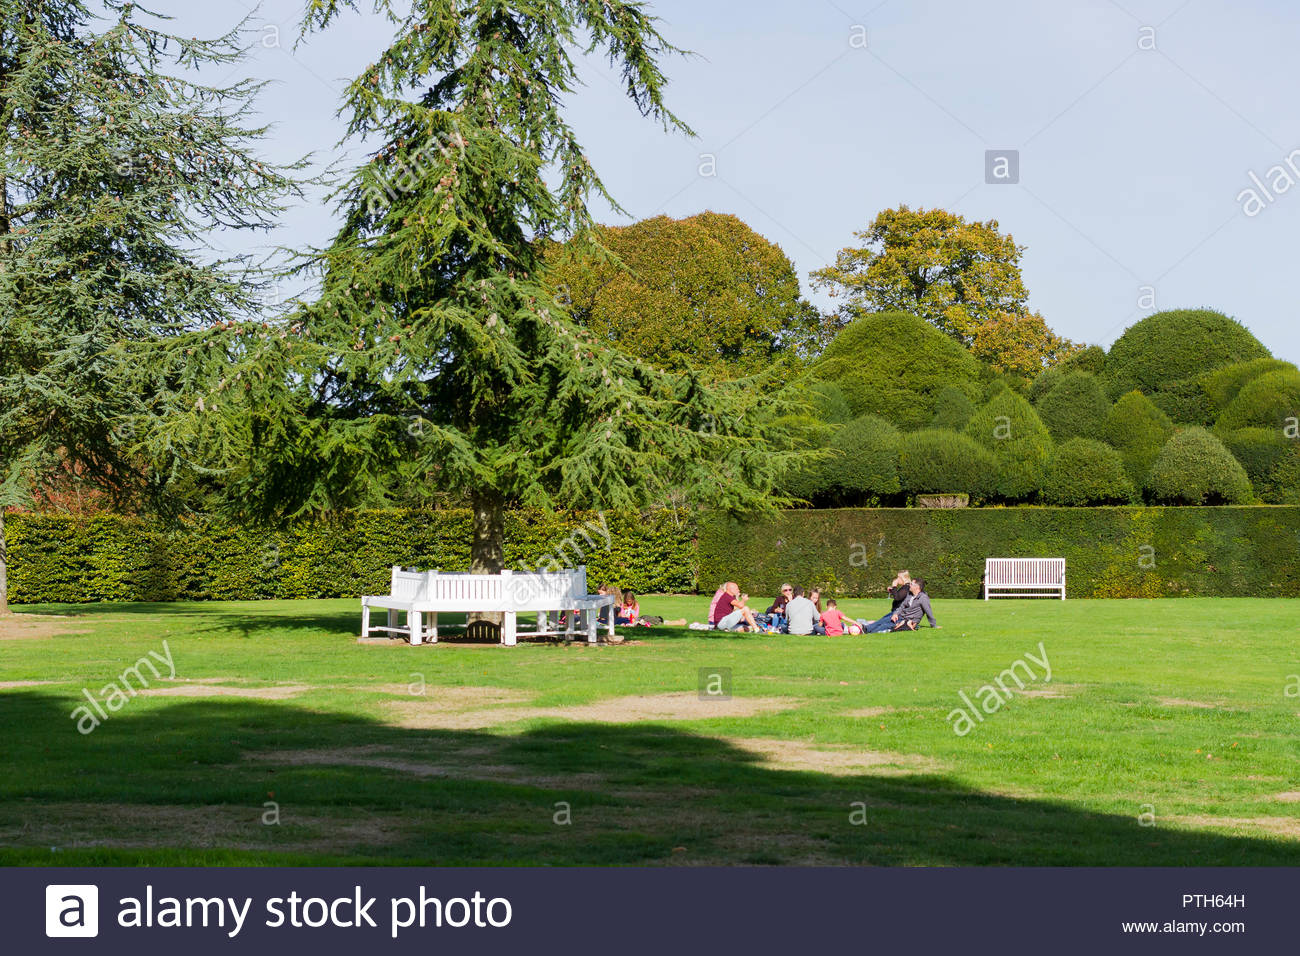 People enjoying a picnic on a lovely sunny sunday afternoon in October 2018, Dorset, England, UK - Stock Image